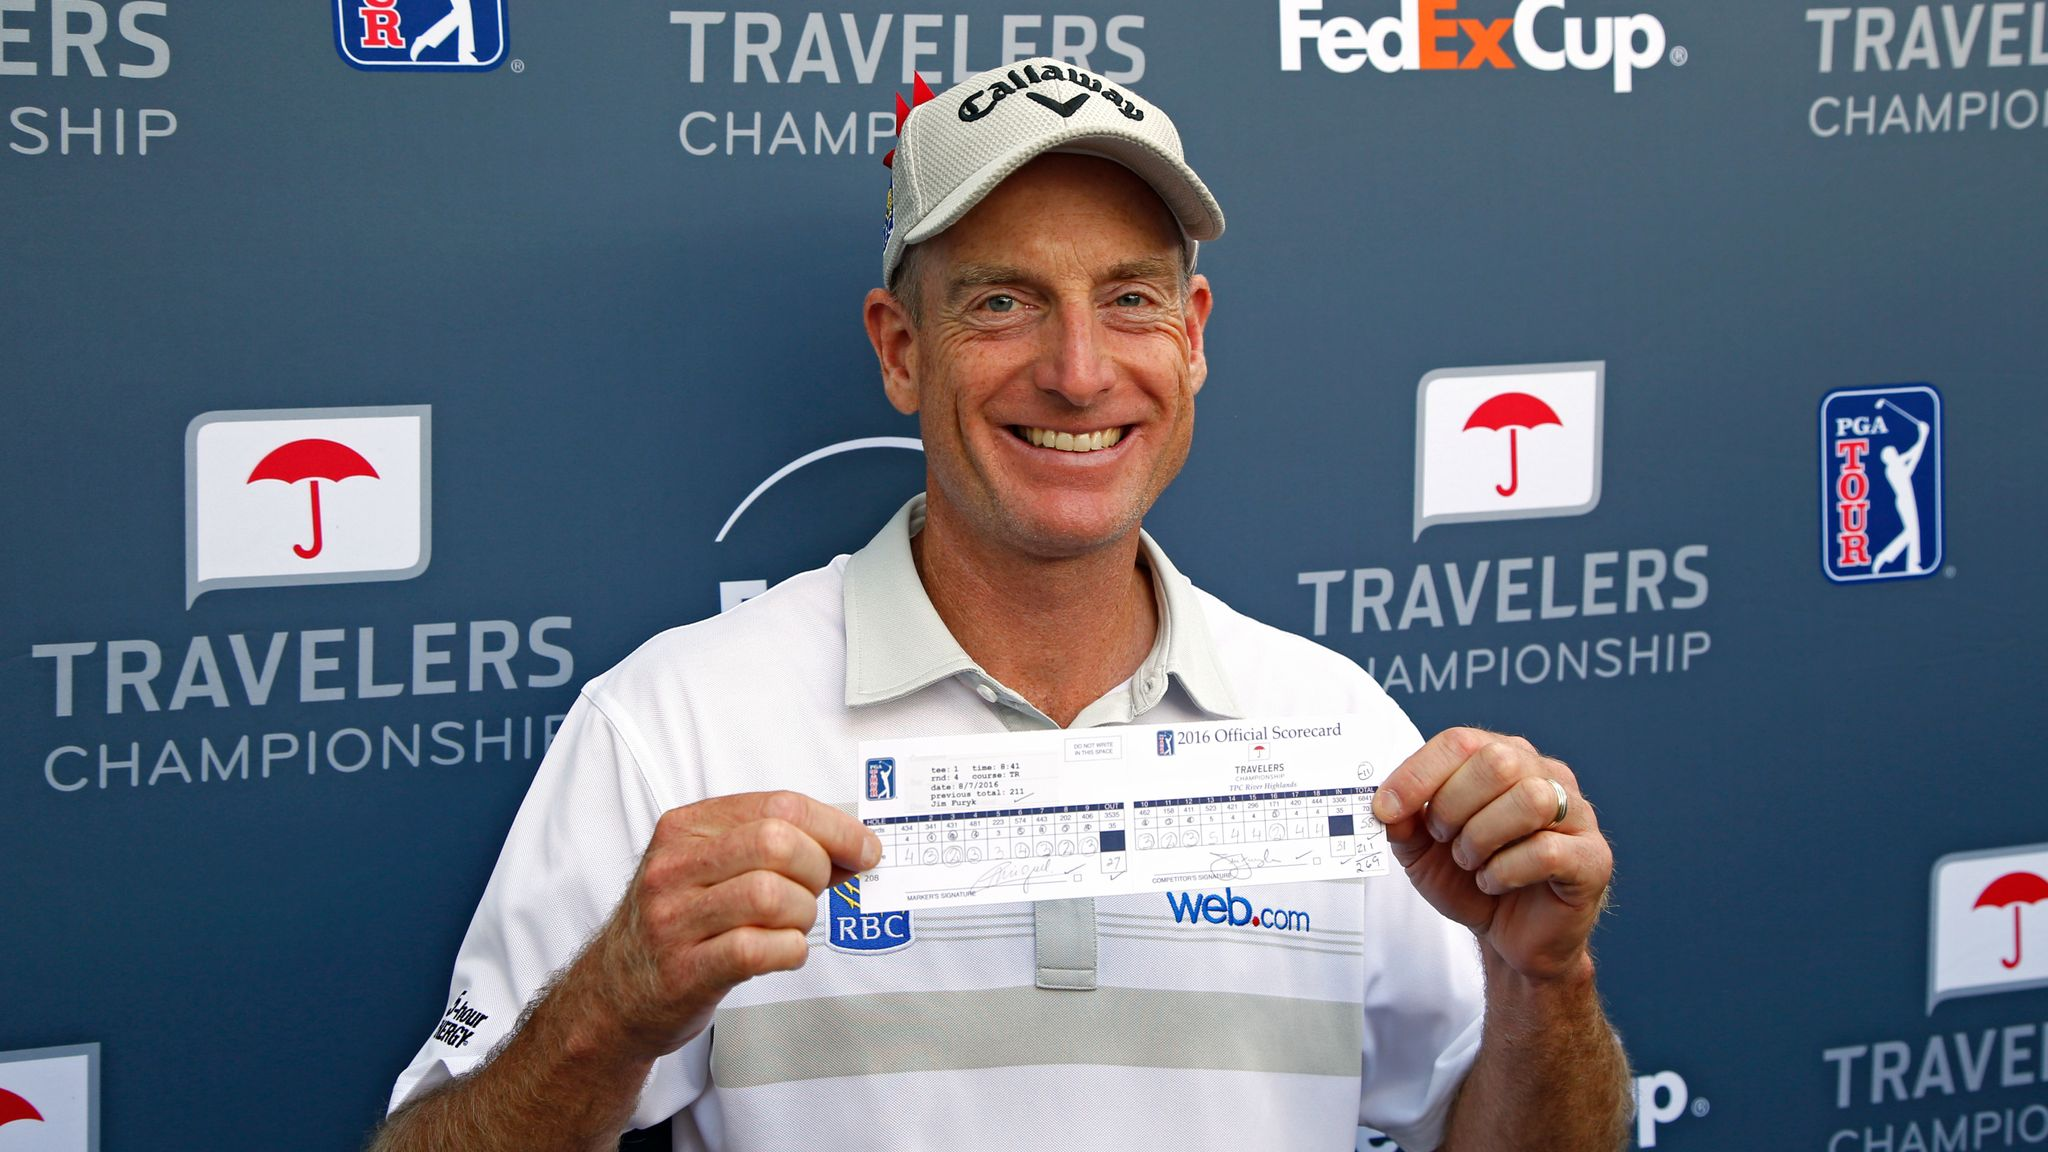 David Carey shoots amazing round of 57 during Alps Tour event